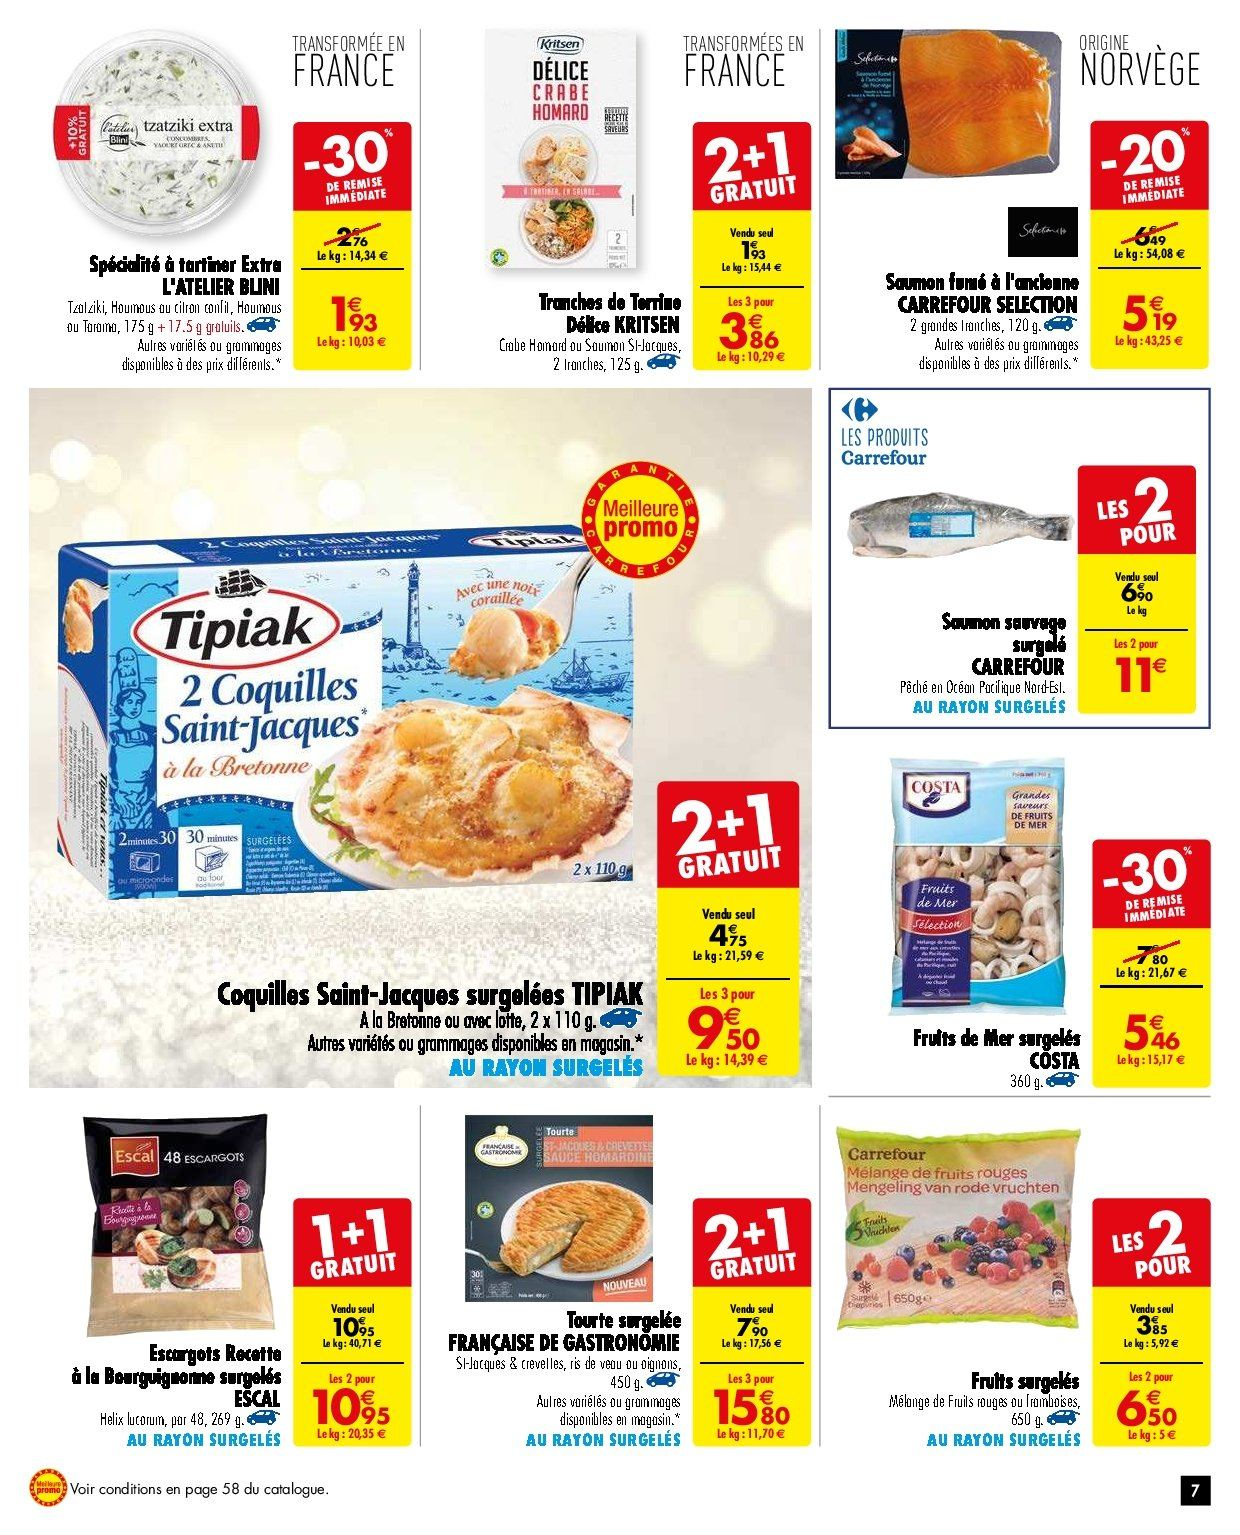 Catalogue Carrefour - 27.11.2018 - 03.12.2018. Page 7.